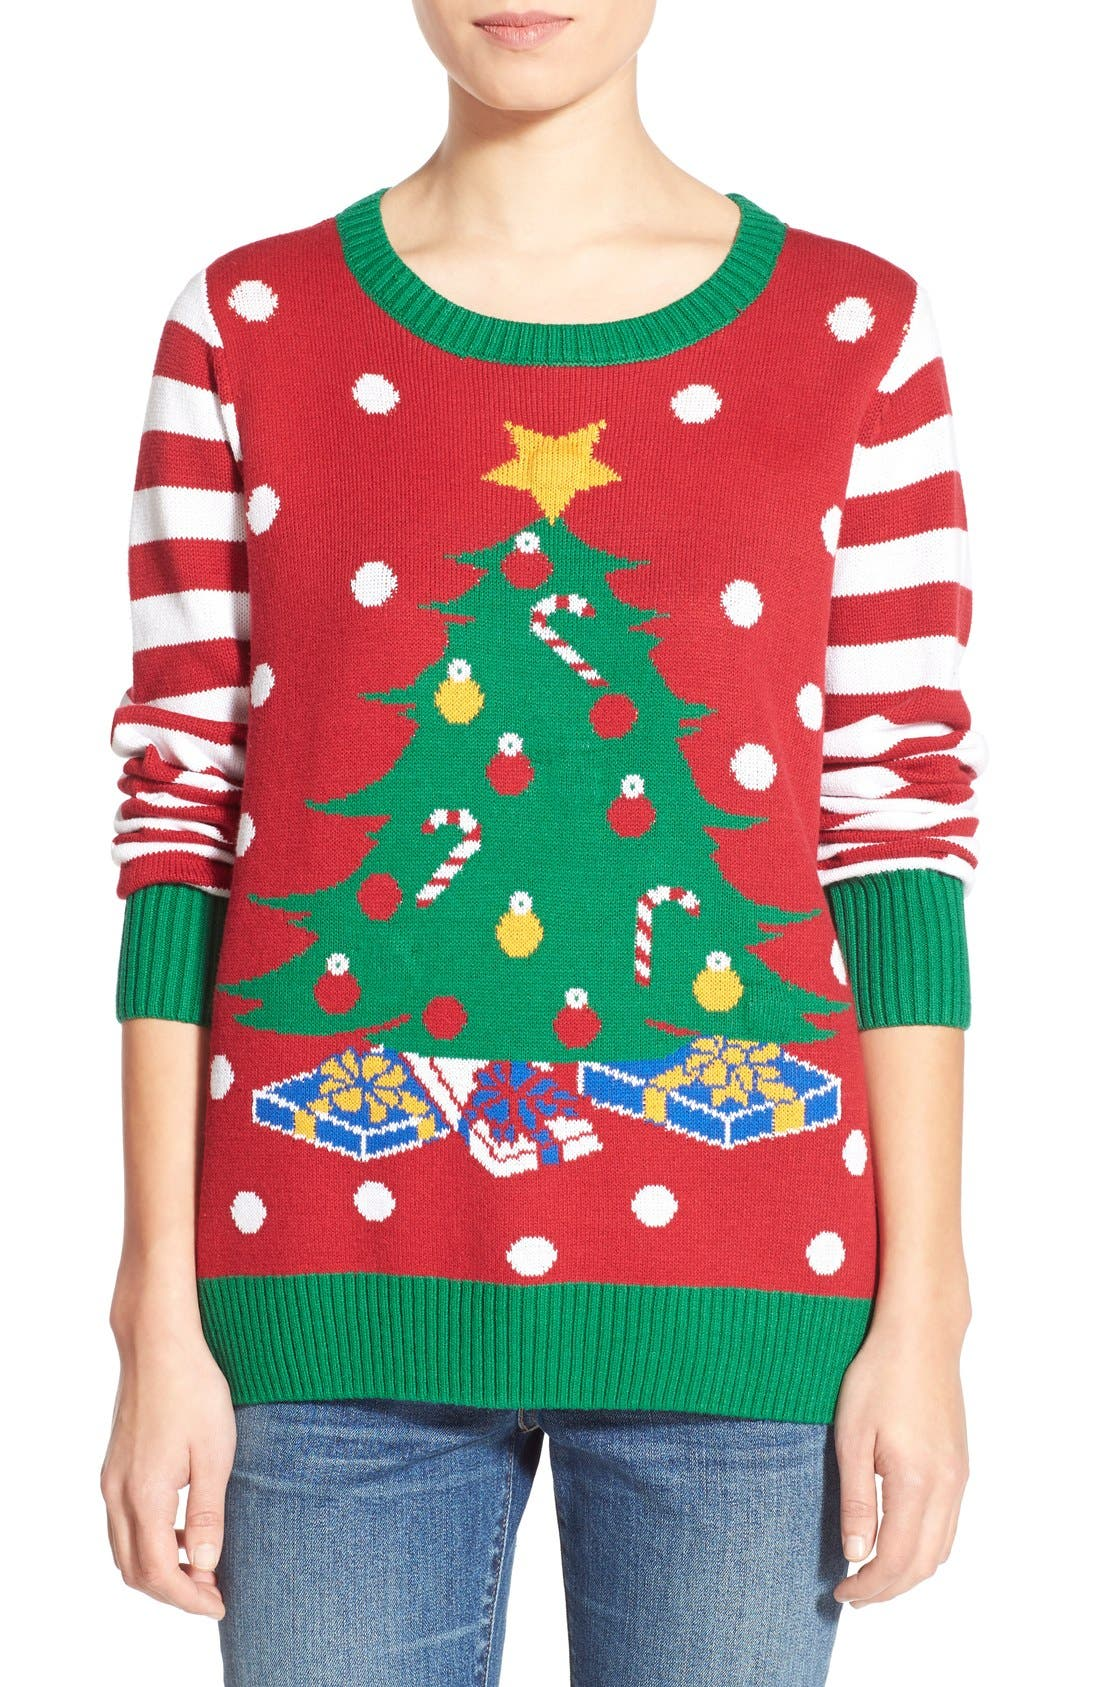 Main Image - Ugly Christmas Sweater Light-Up Christmas Tree Sweater